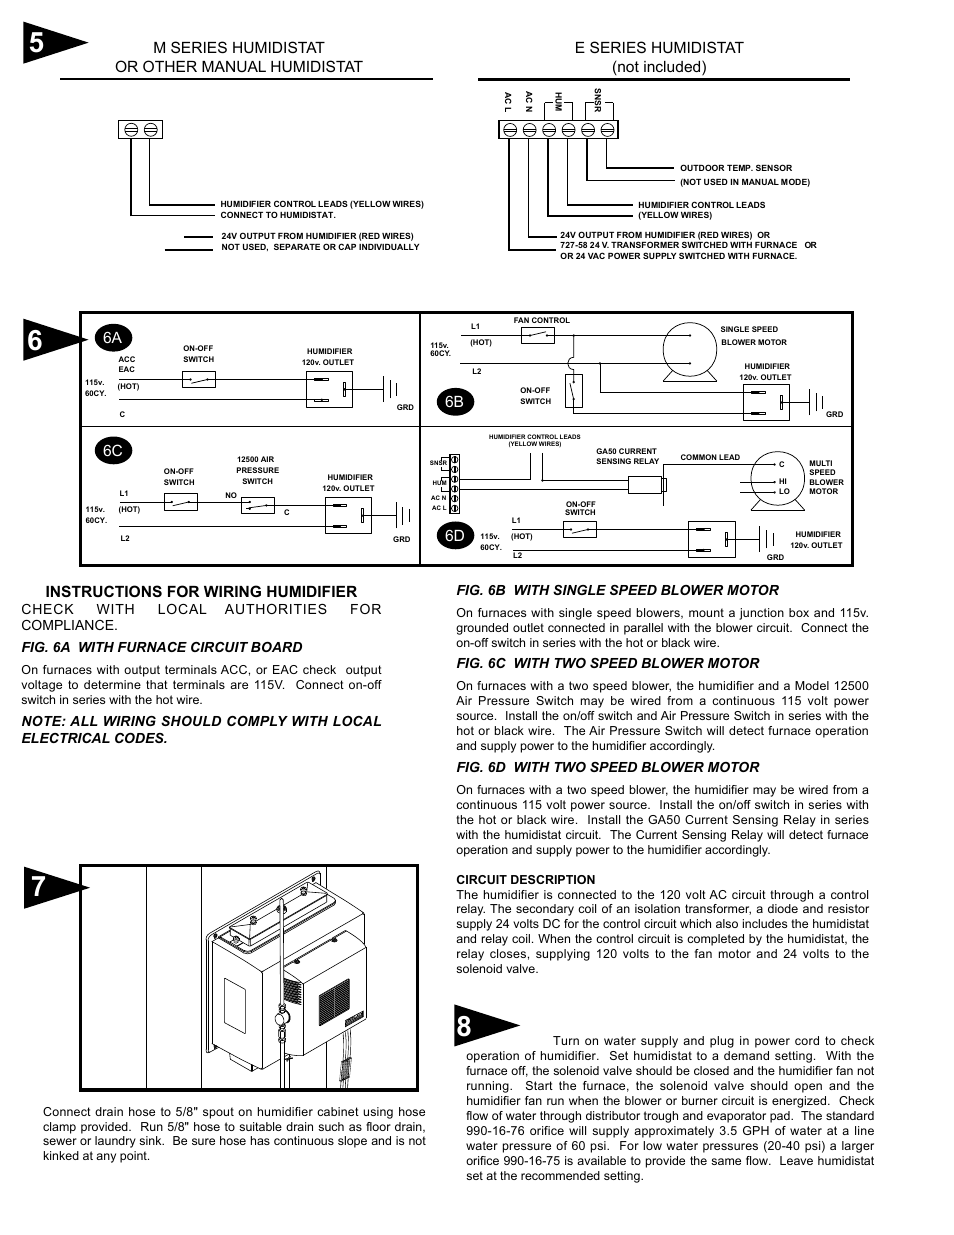 medium resolution of instructions for wiring humidifier e series humidistat not included 6a 6c 6b generalaire 1137 series legacy user manual page 3 4